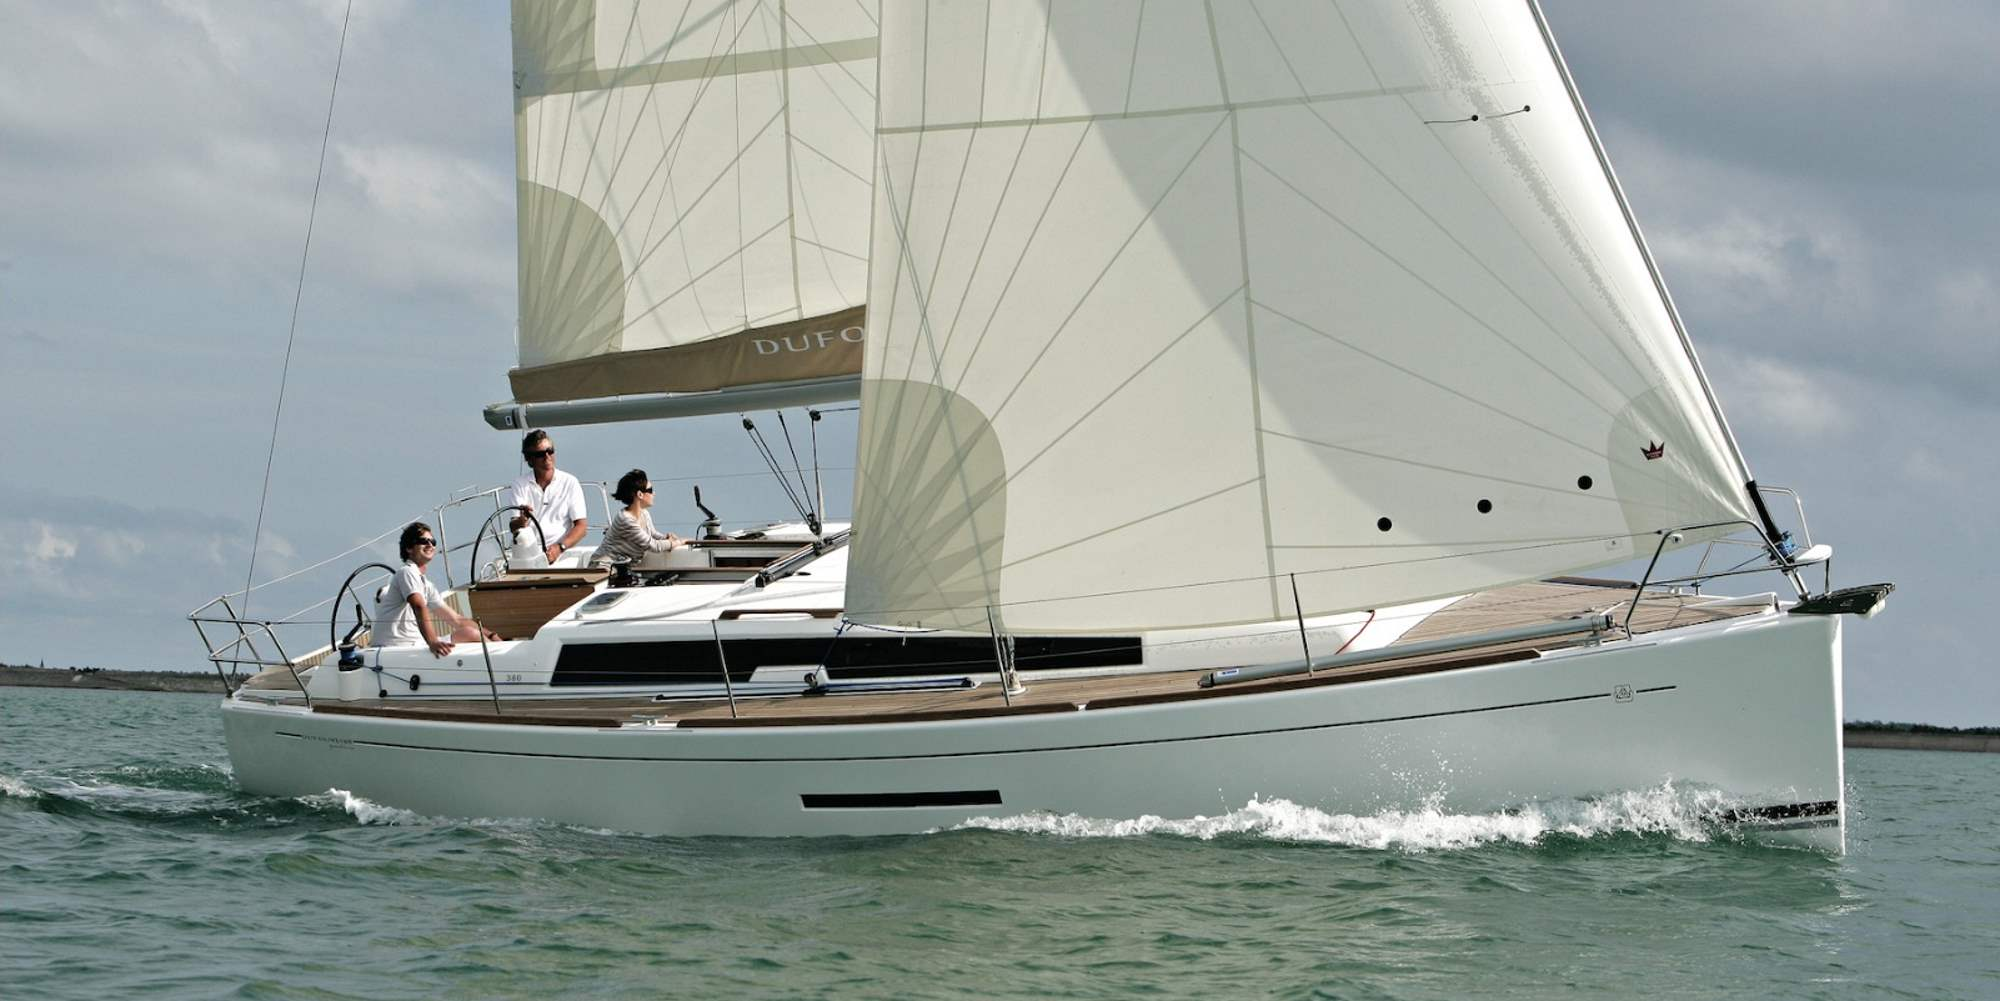 Dufour 380 Class - Sailing Yacht for Charter in Greece